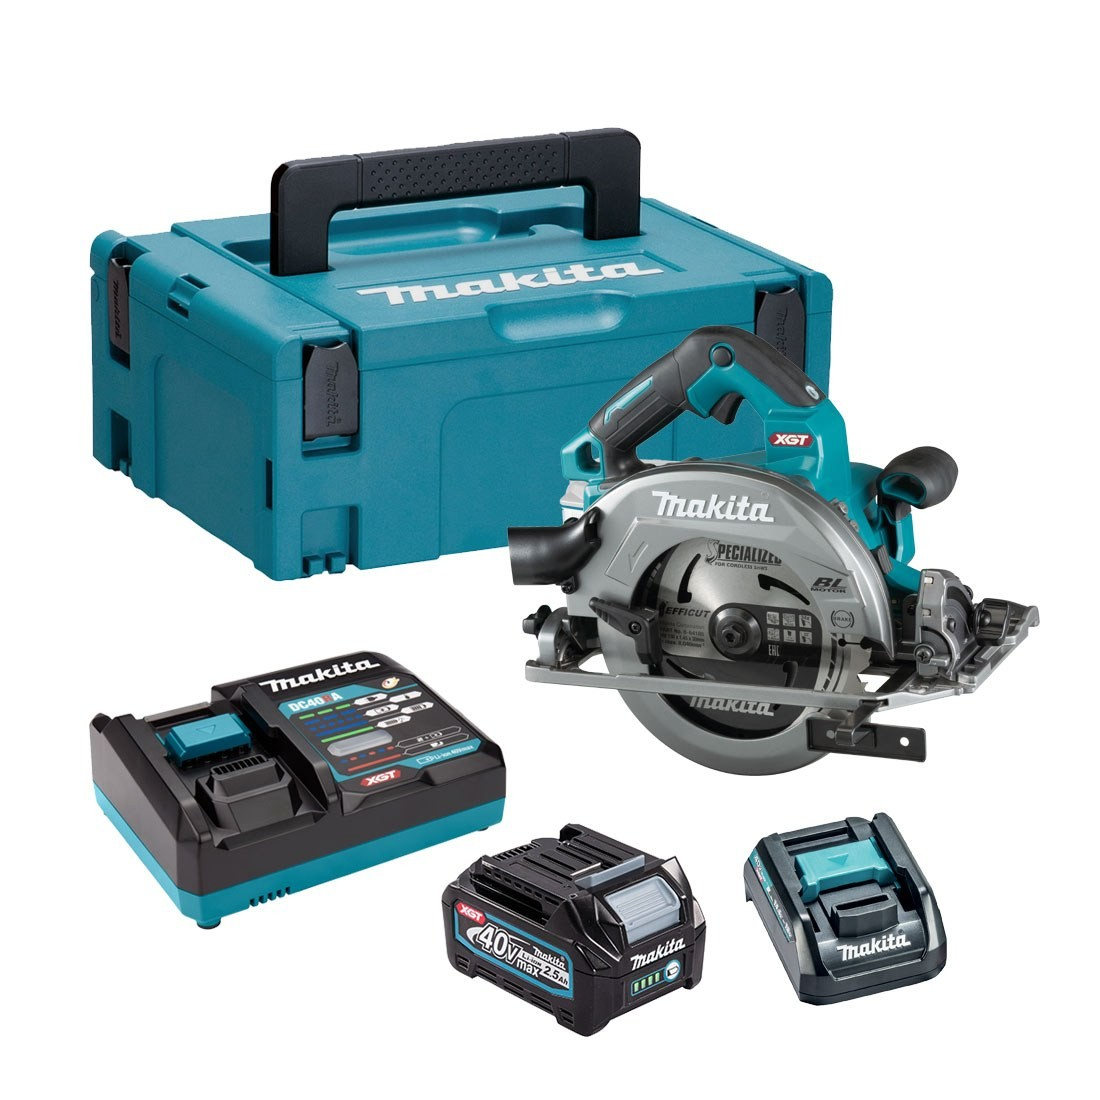 Makita HS004GD103 40v XGT Brushless Circular Saw 190mm, 1 x 2.5ah Battery, Fast Charger, Carry case + ADP10 Adaptor